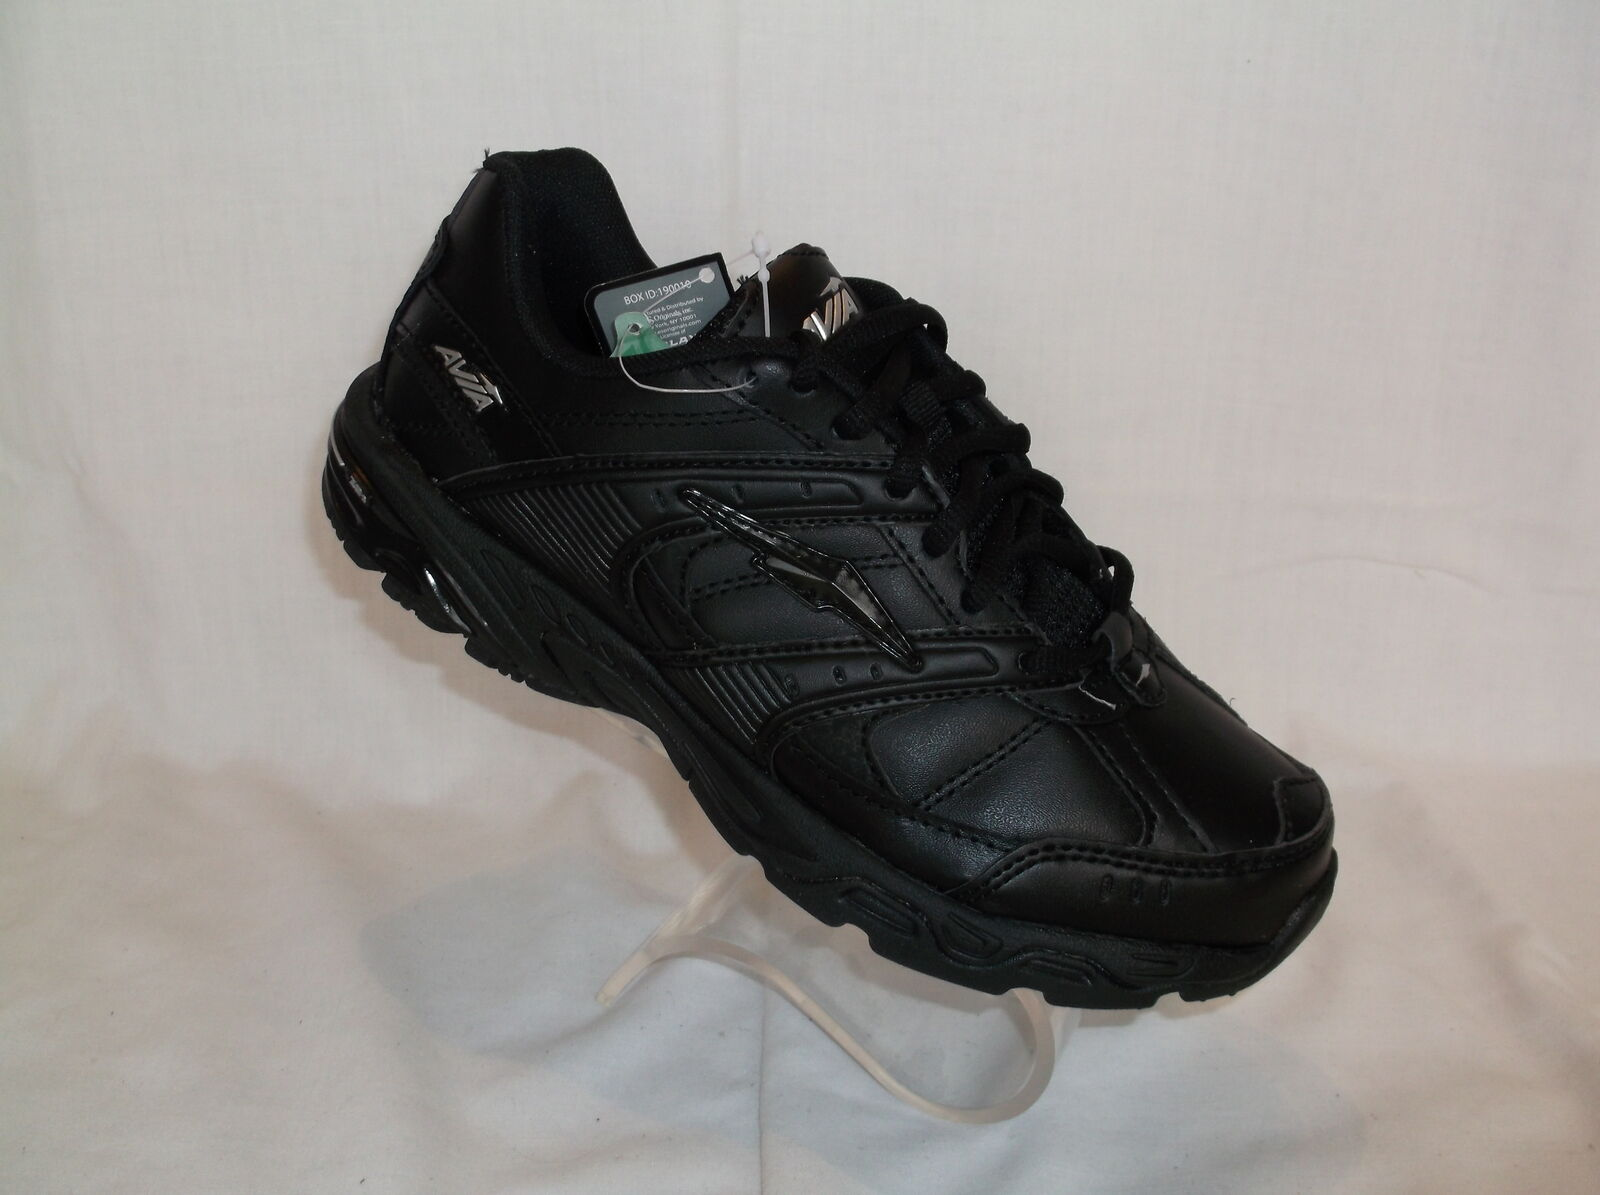 AVIA (TAYLOR) BLACK LEATHER IN WOMENS ATHLETIC SHOE  NEW IN LEATHER BOX 3a4c08